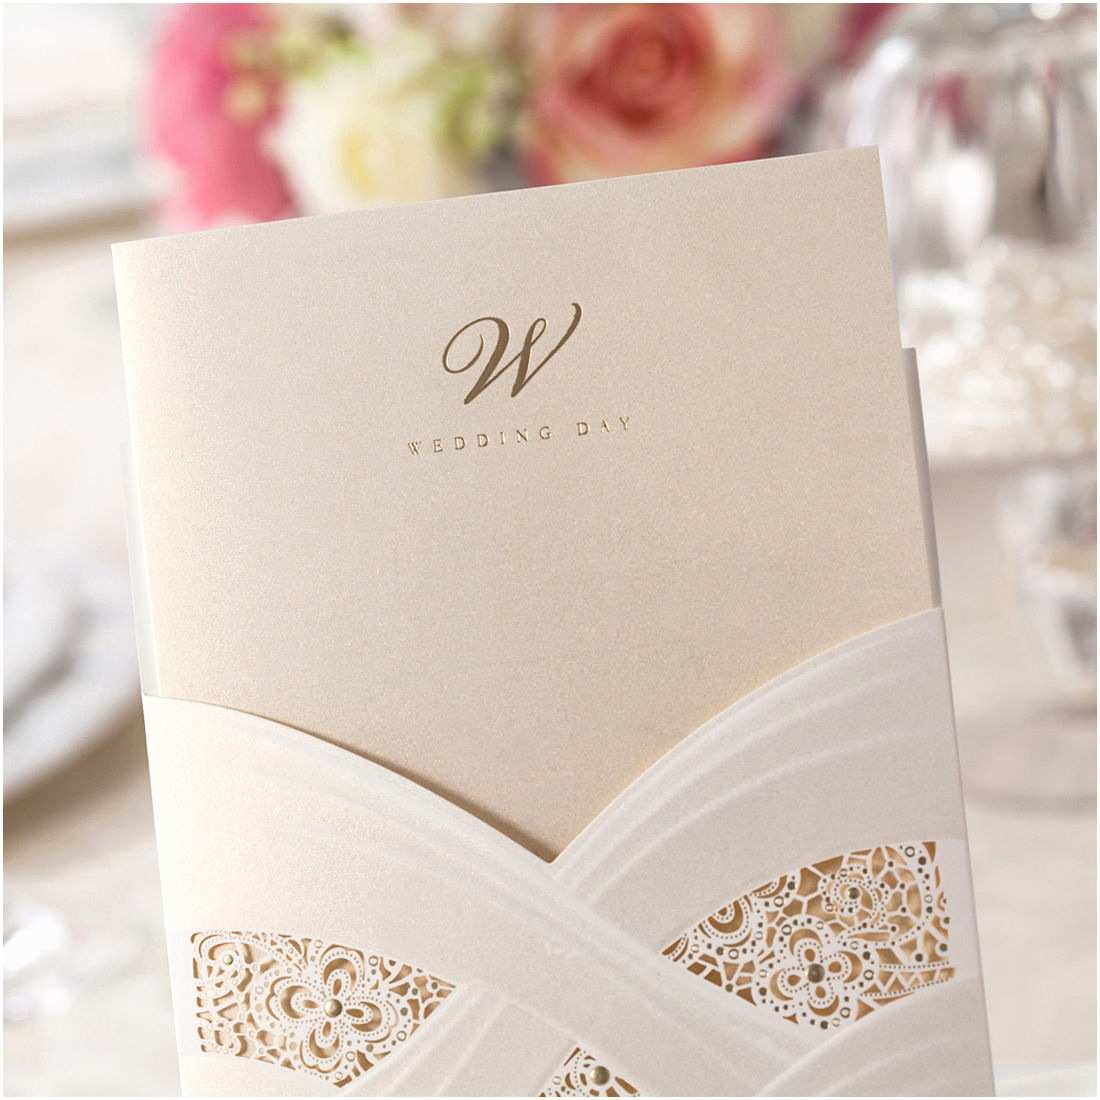 Initial Stickers for Wedding Invitations Pocket Wedding Invitation Card Kit Cw060 with Envelope